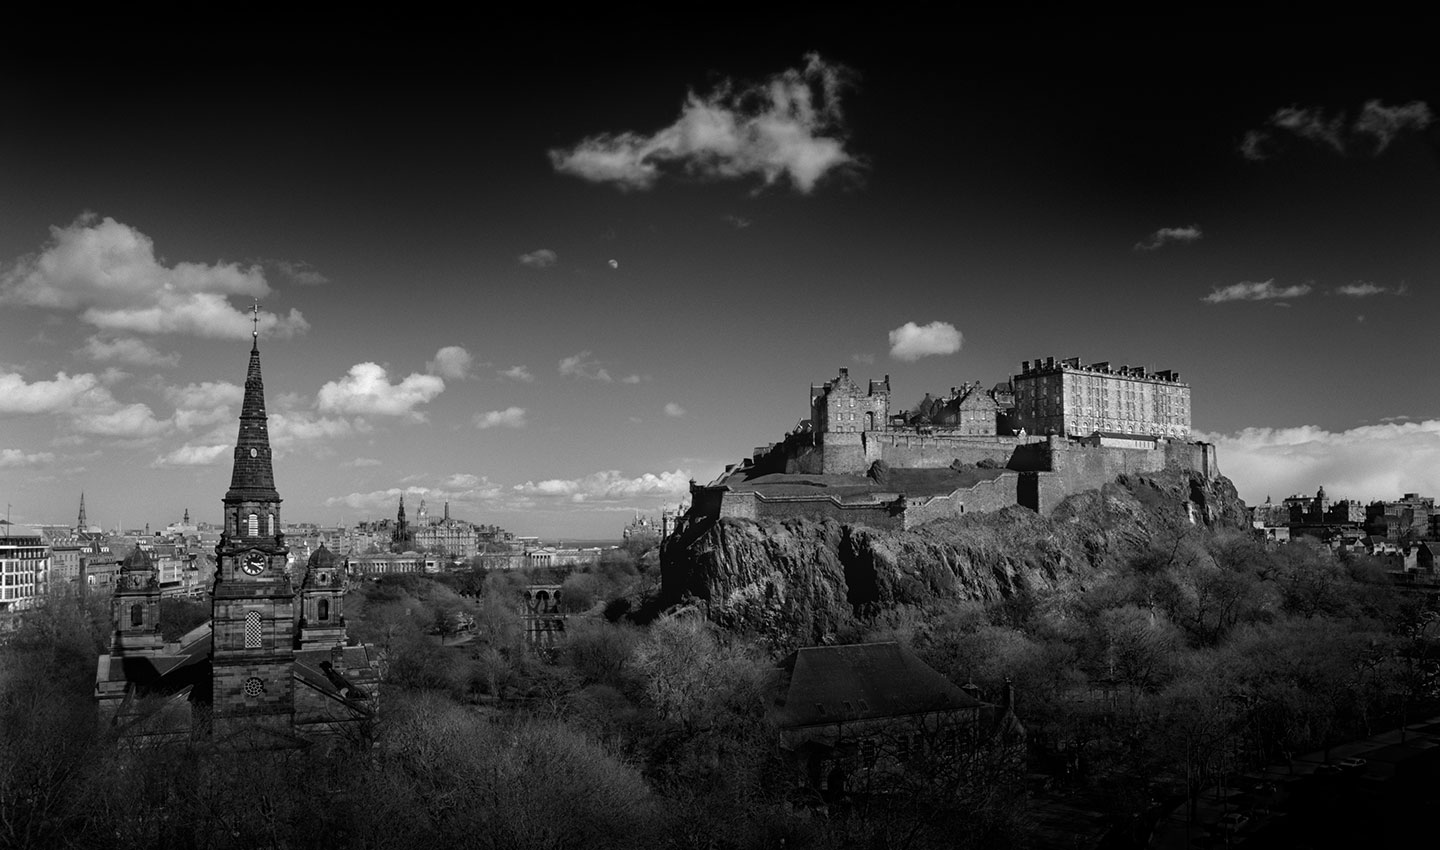 Bass-Rock-Edinburgh-river-forth-Scotland-black-and-white-monochrome-Photography-Lindsay_Robertson